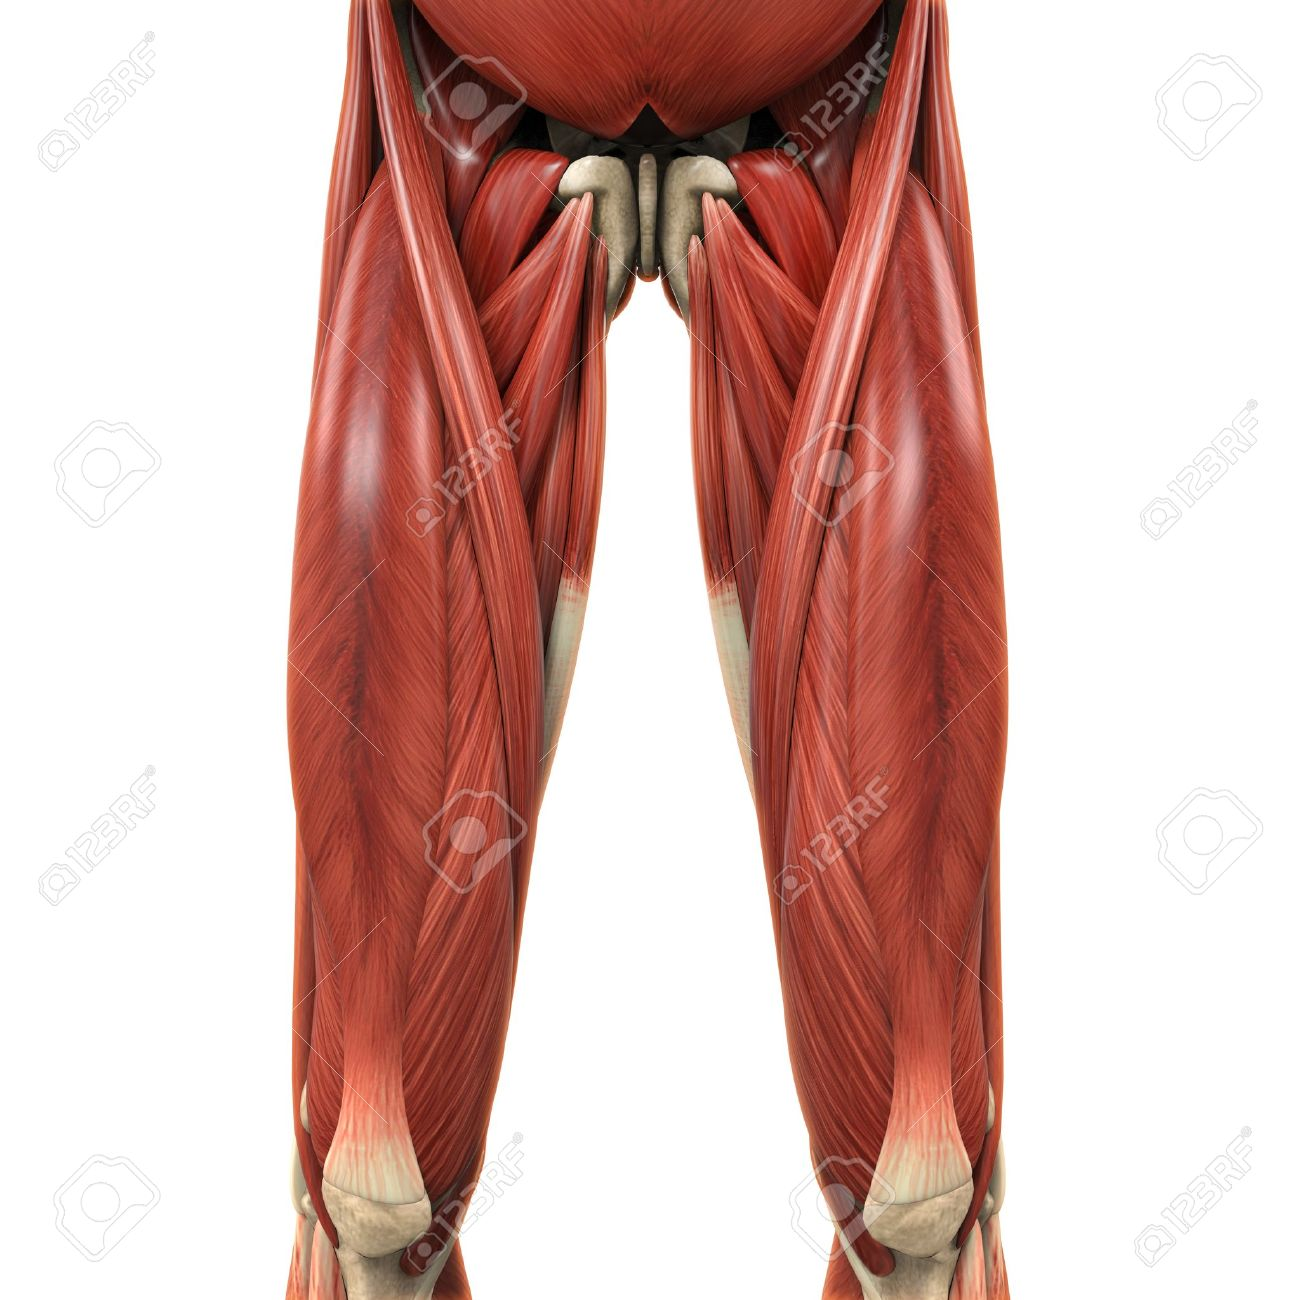 Upper Legs Muscles Anatomy Stock Photo Picture And Royalty Free